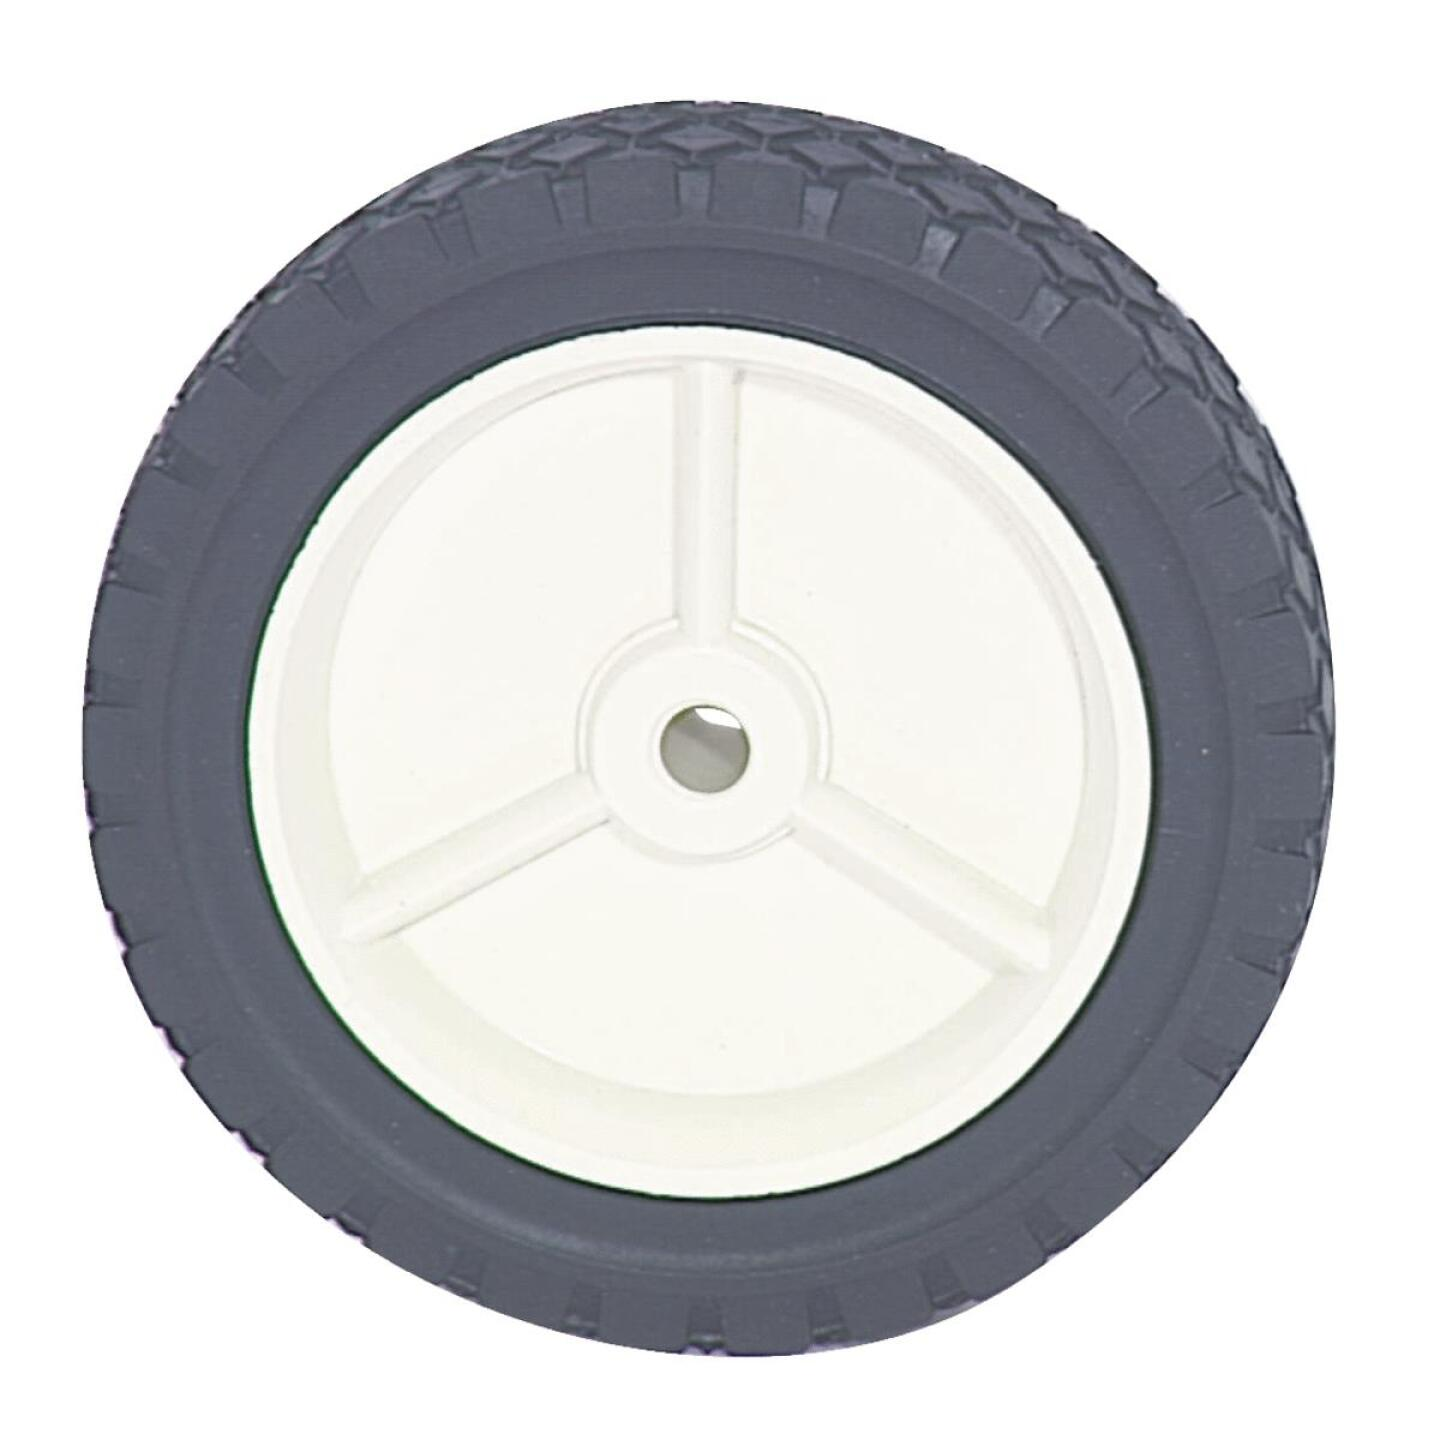 Arnold 7 In. Diamond Tread Offset Hub Wheel Image 2